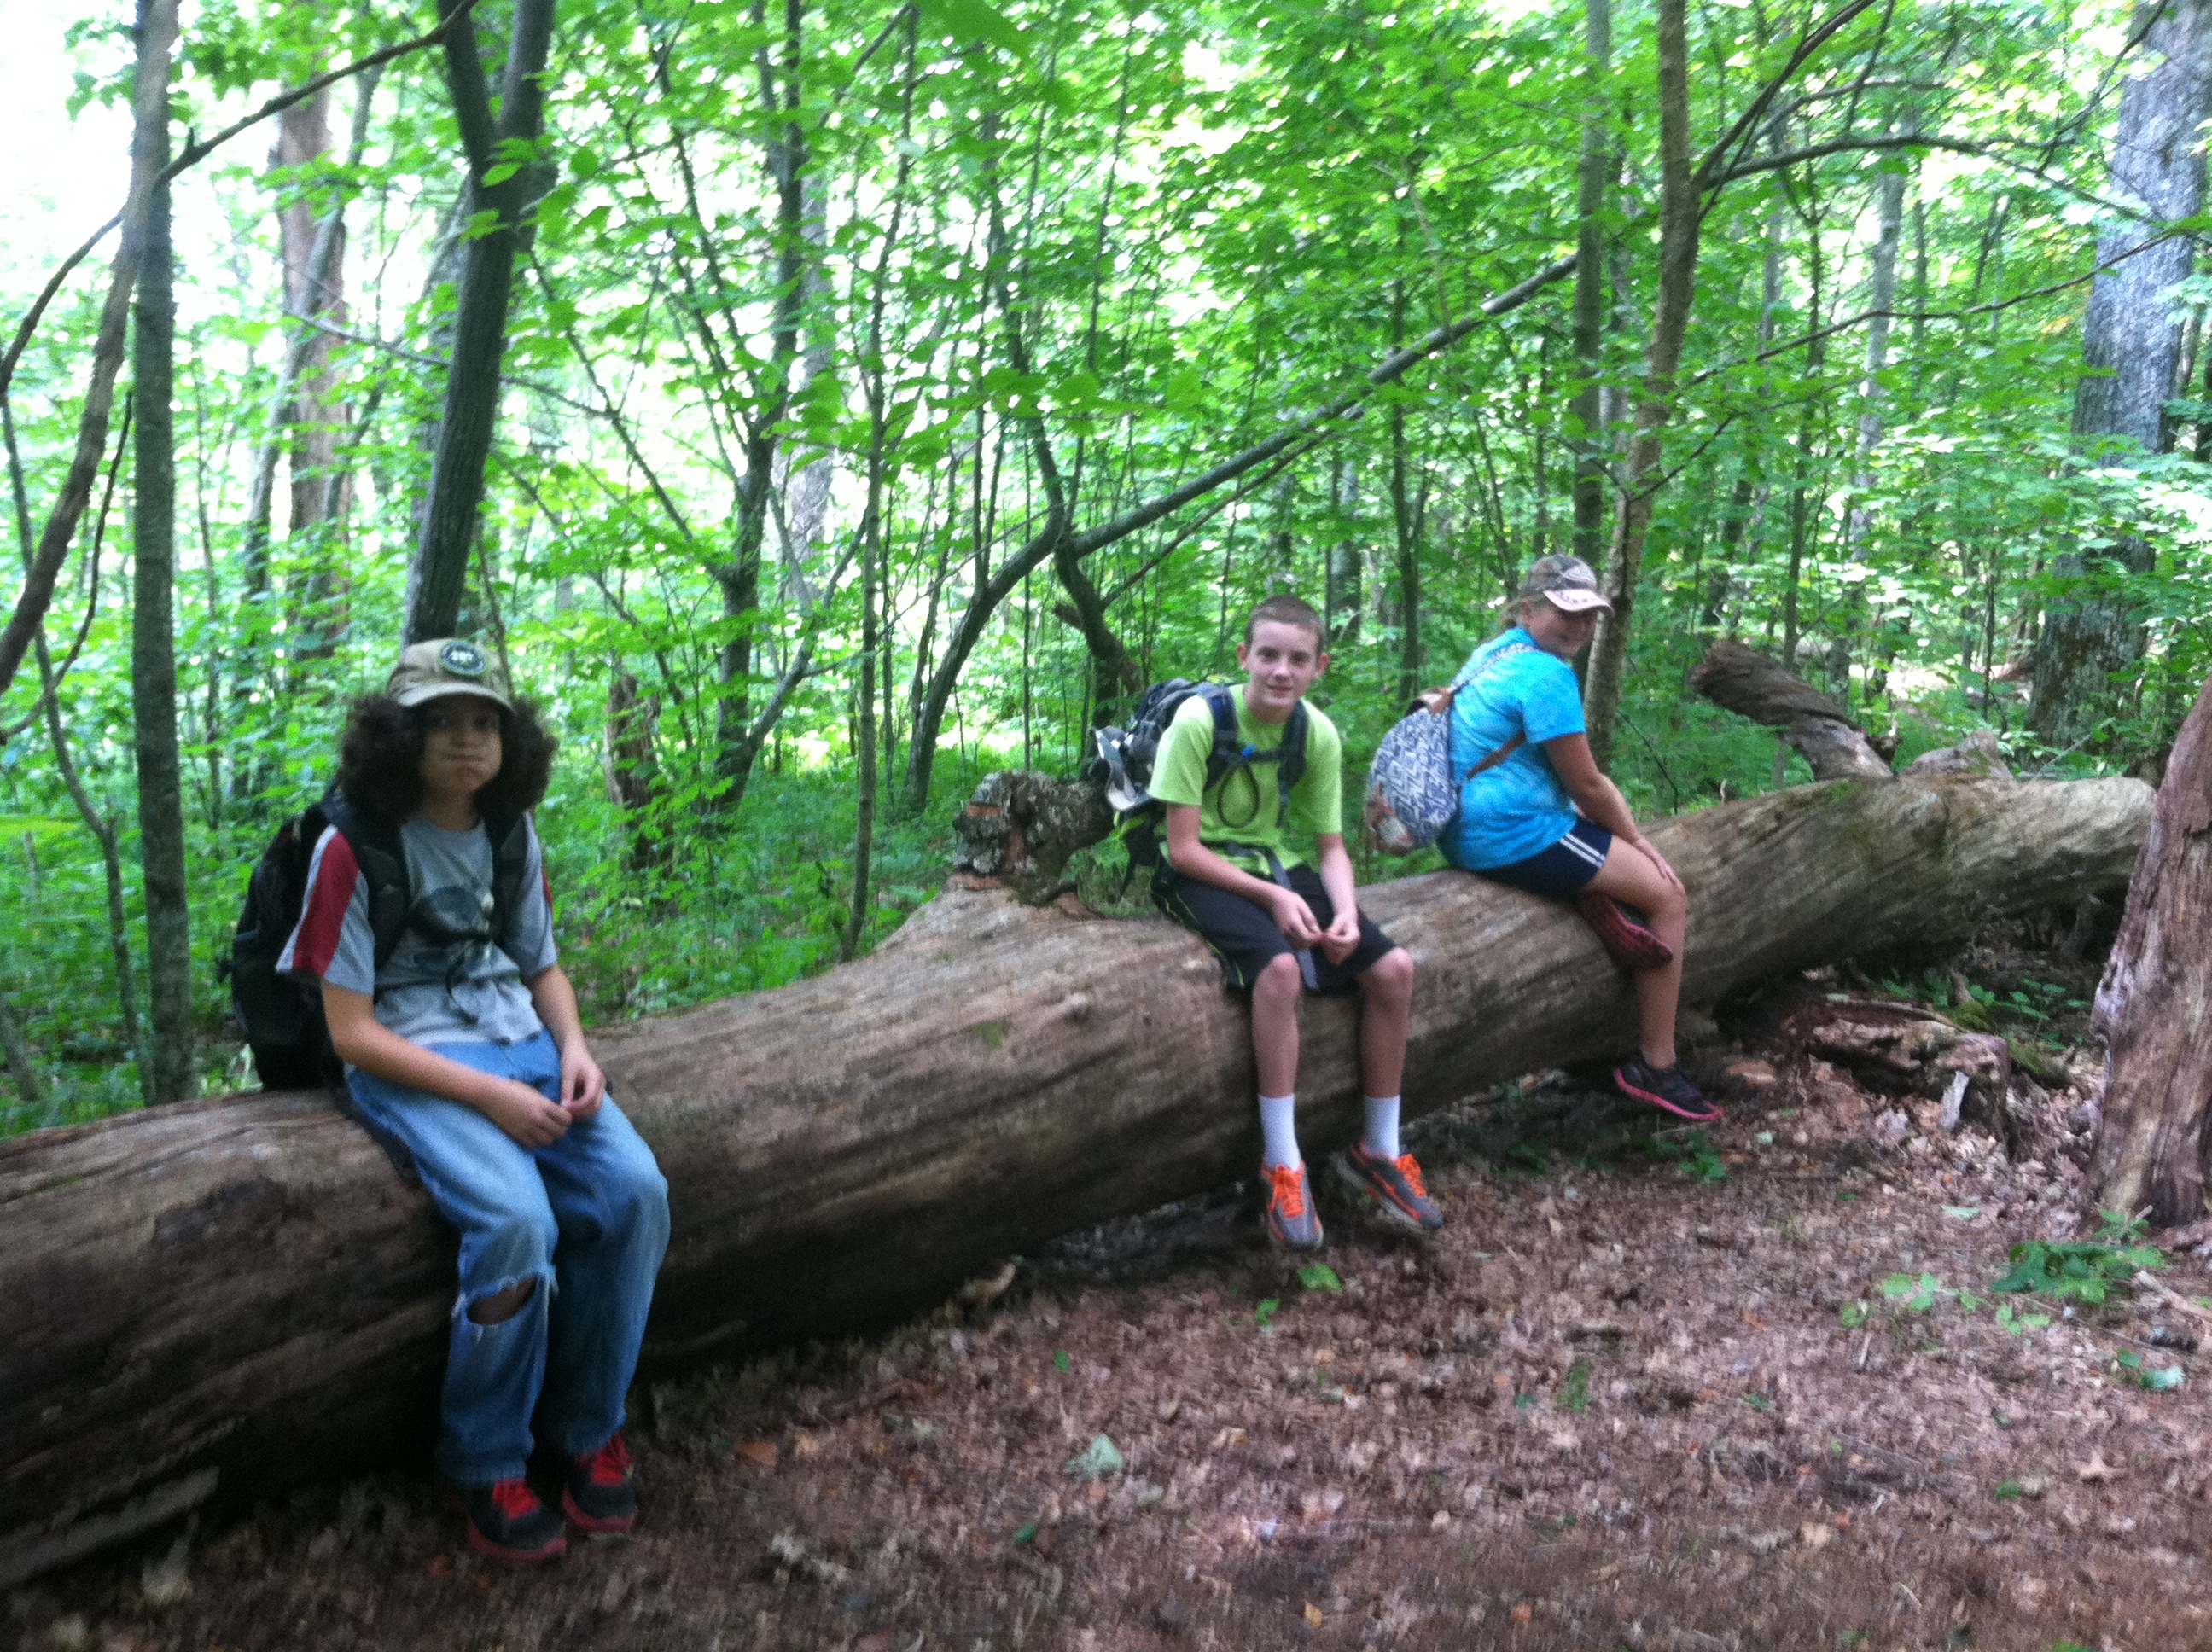 Campers take a break on the trail